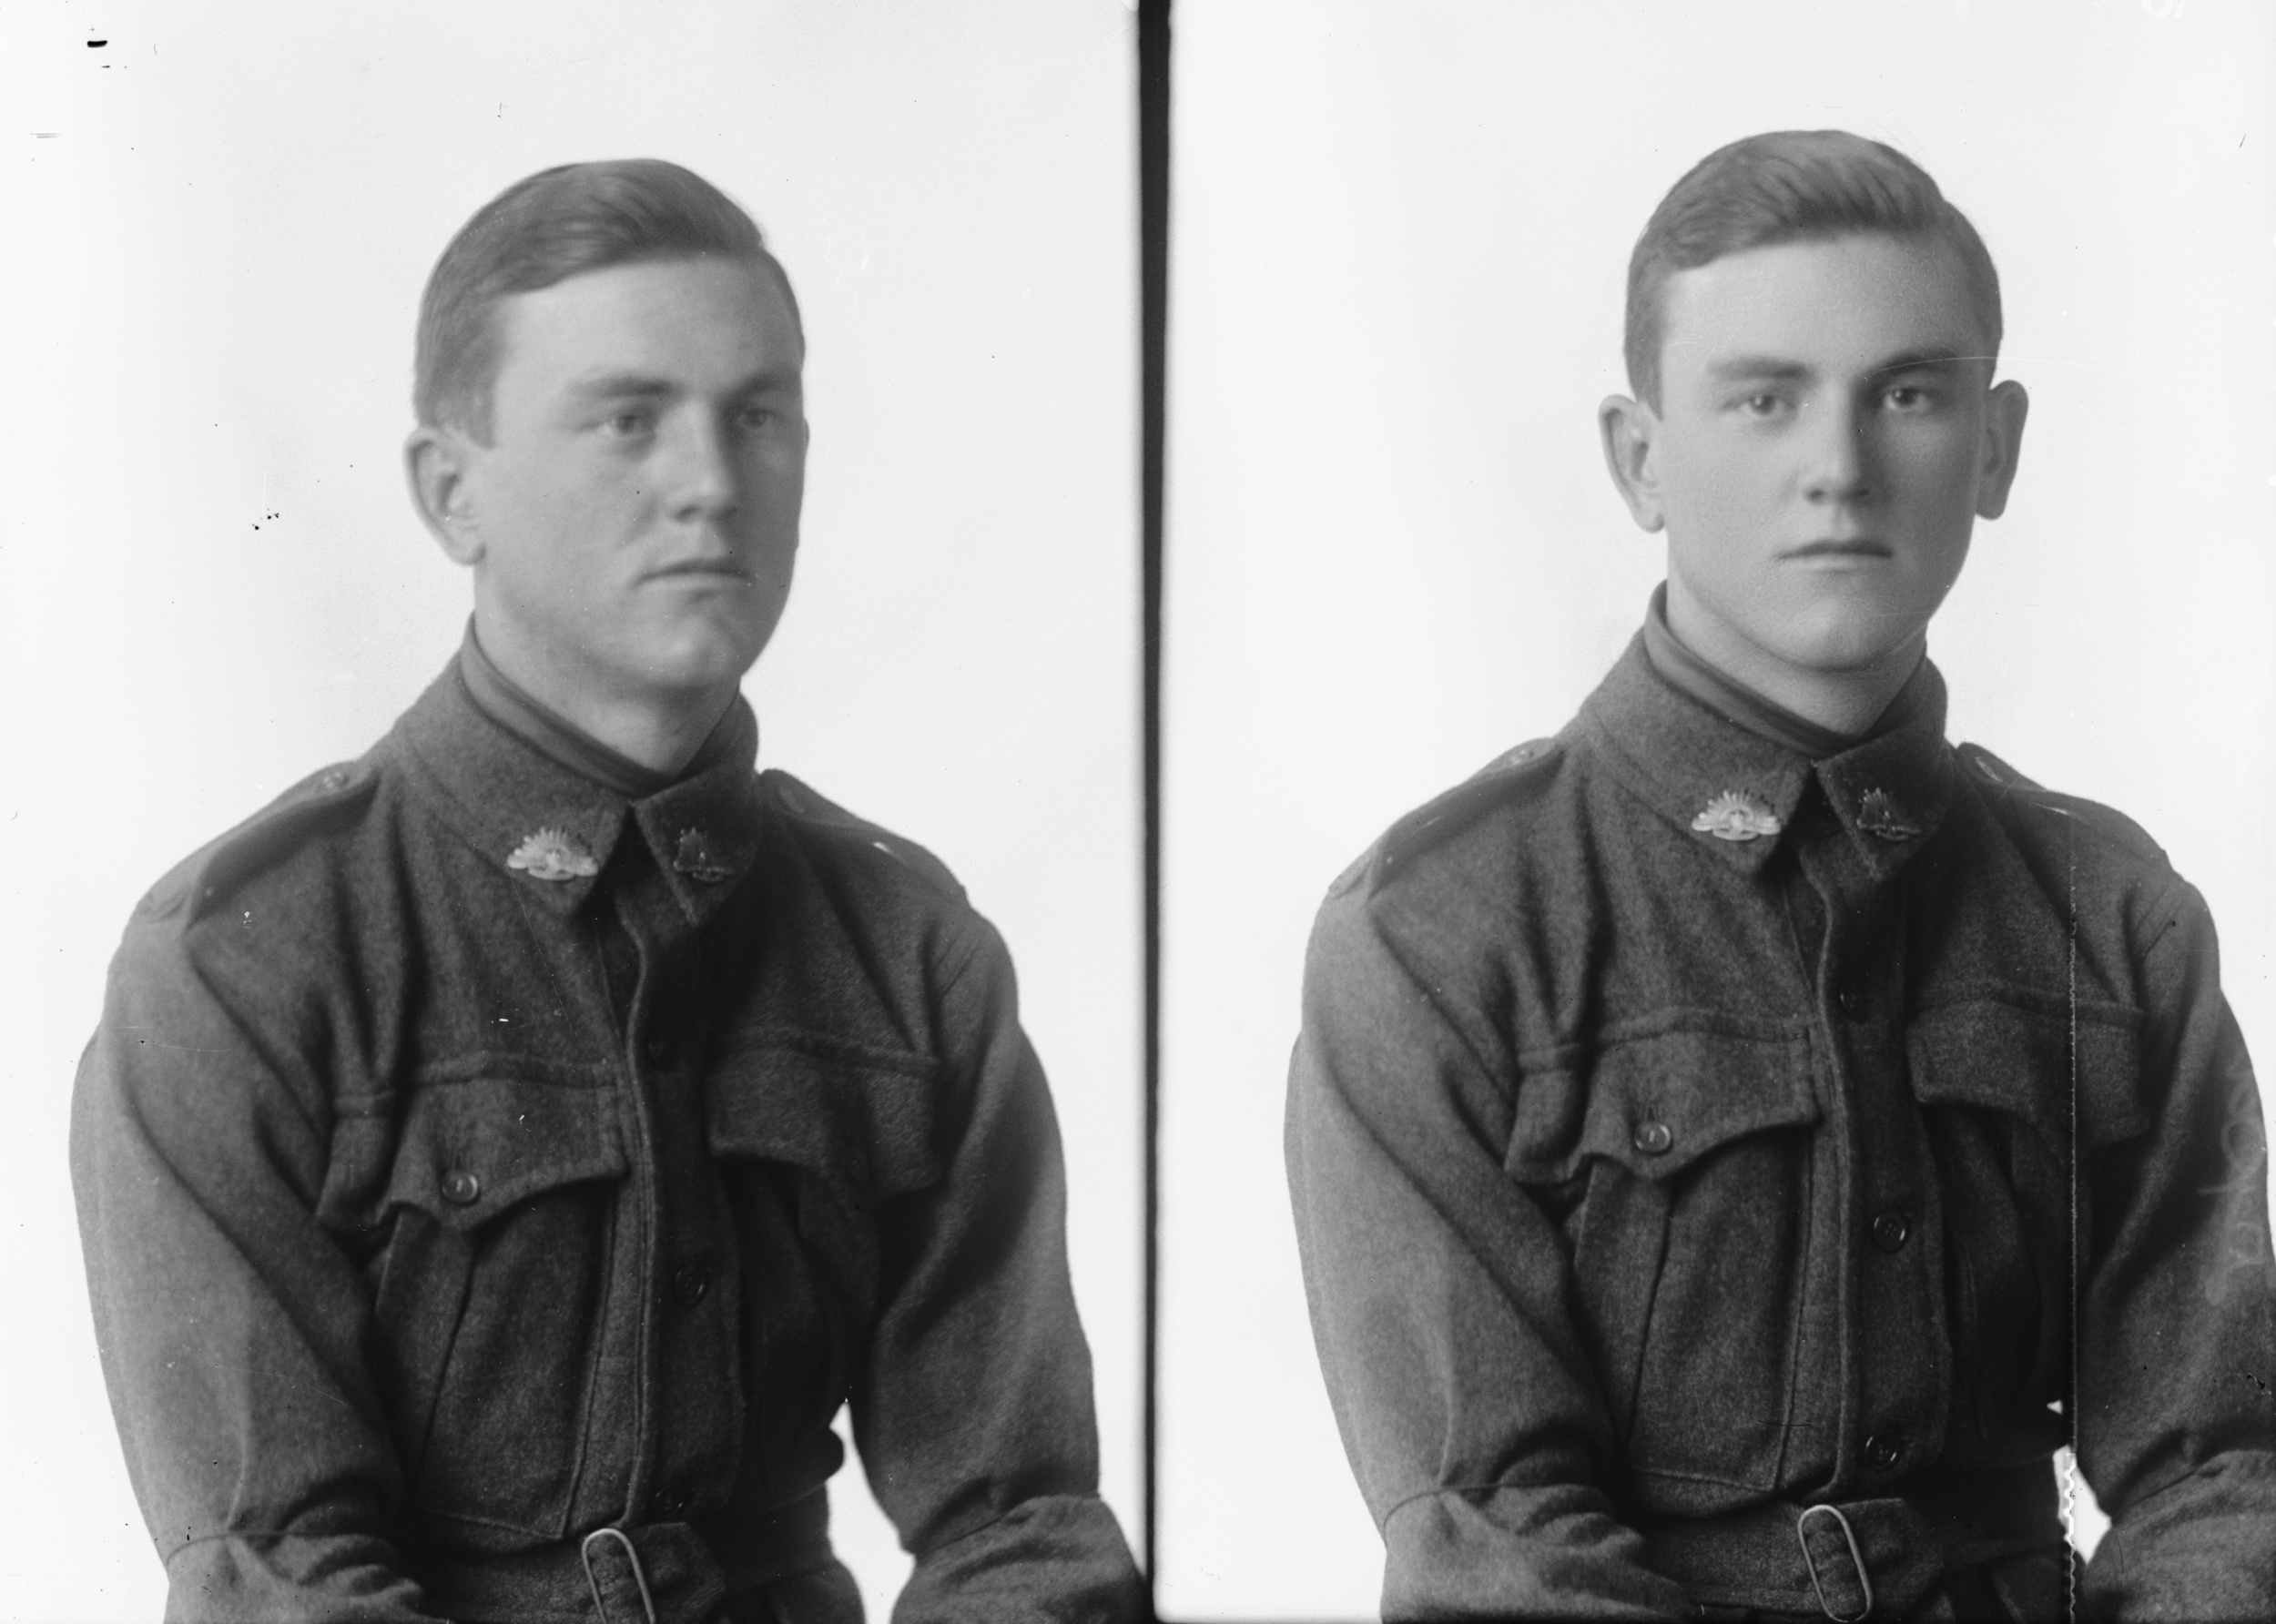 Photographed at the Dease Studio, 117 Barrack Street Perth WA Image courtesy of the State Library of Western Australia: 108148PD